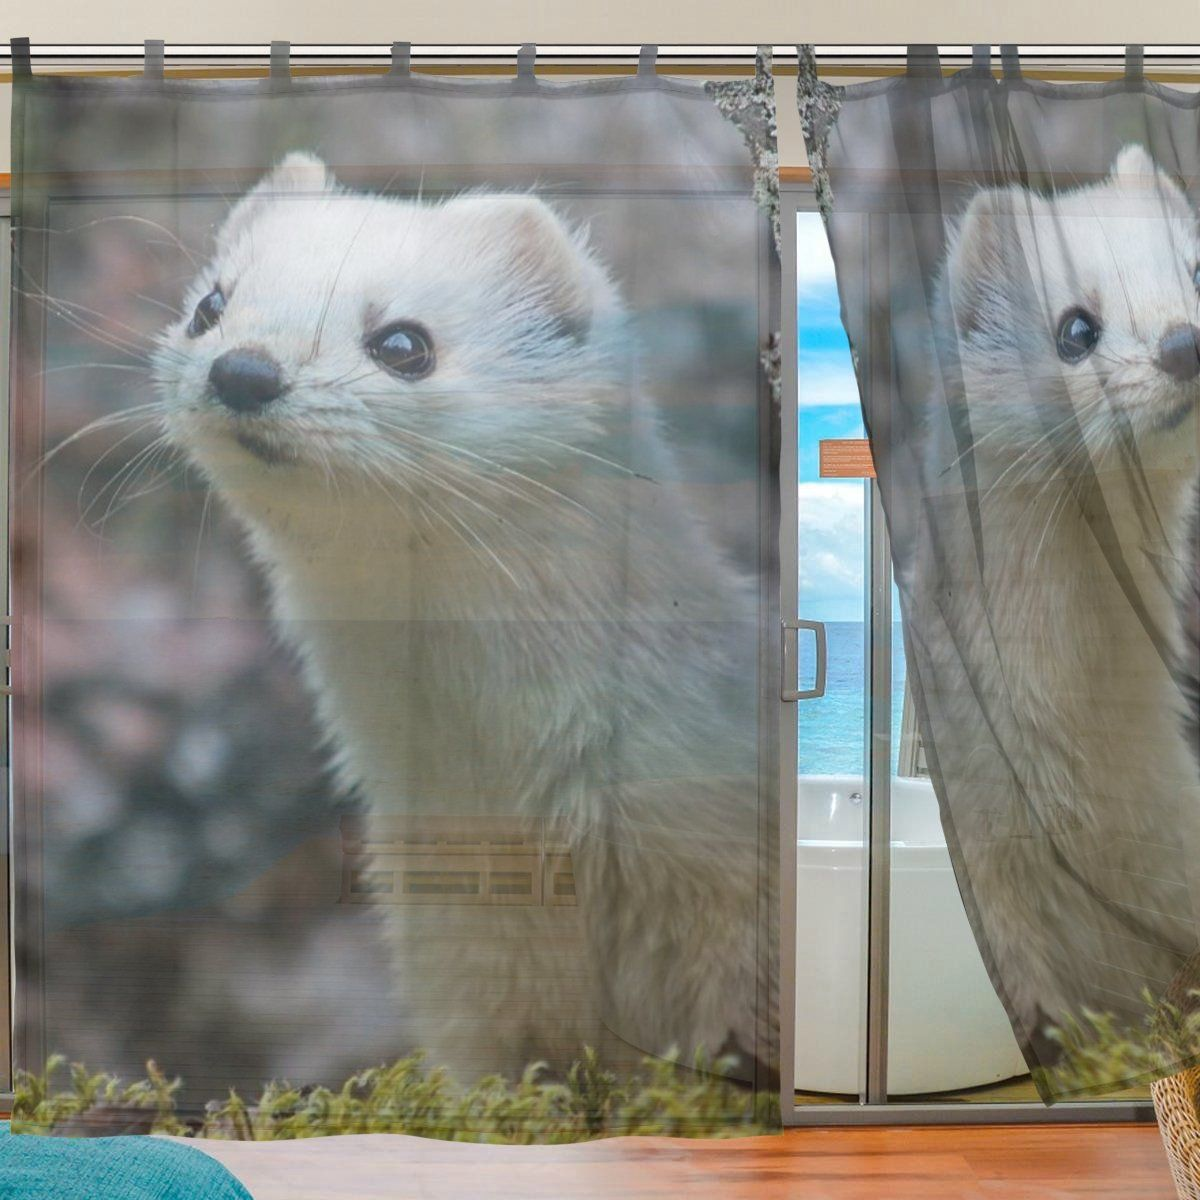 Ingbags Bedroom Decor Living Room Decorations Ferret Pattern Print Tulle Polyester Door Window Gauze Sheer Curtain Drapes Curtains Curtains Windows And Doors